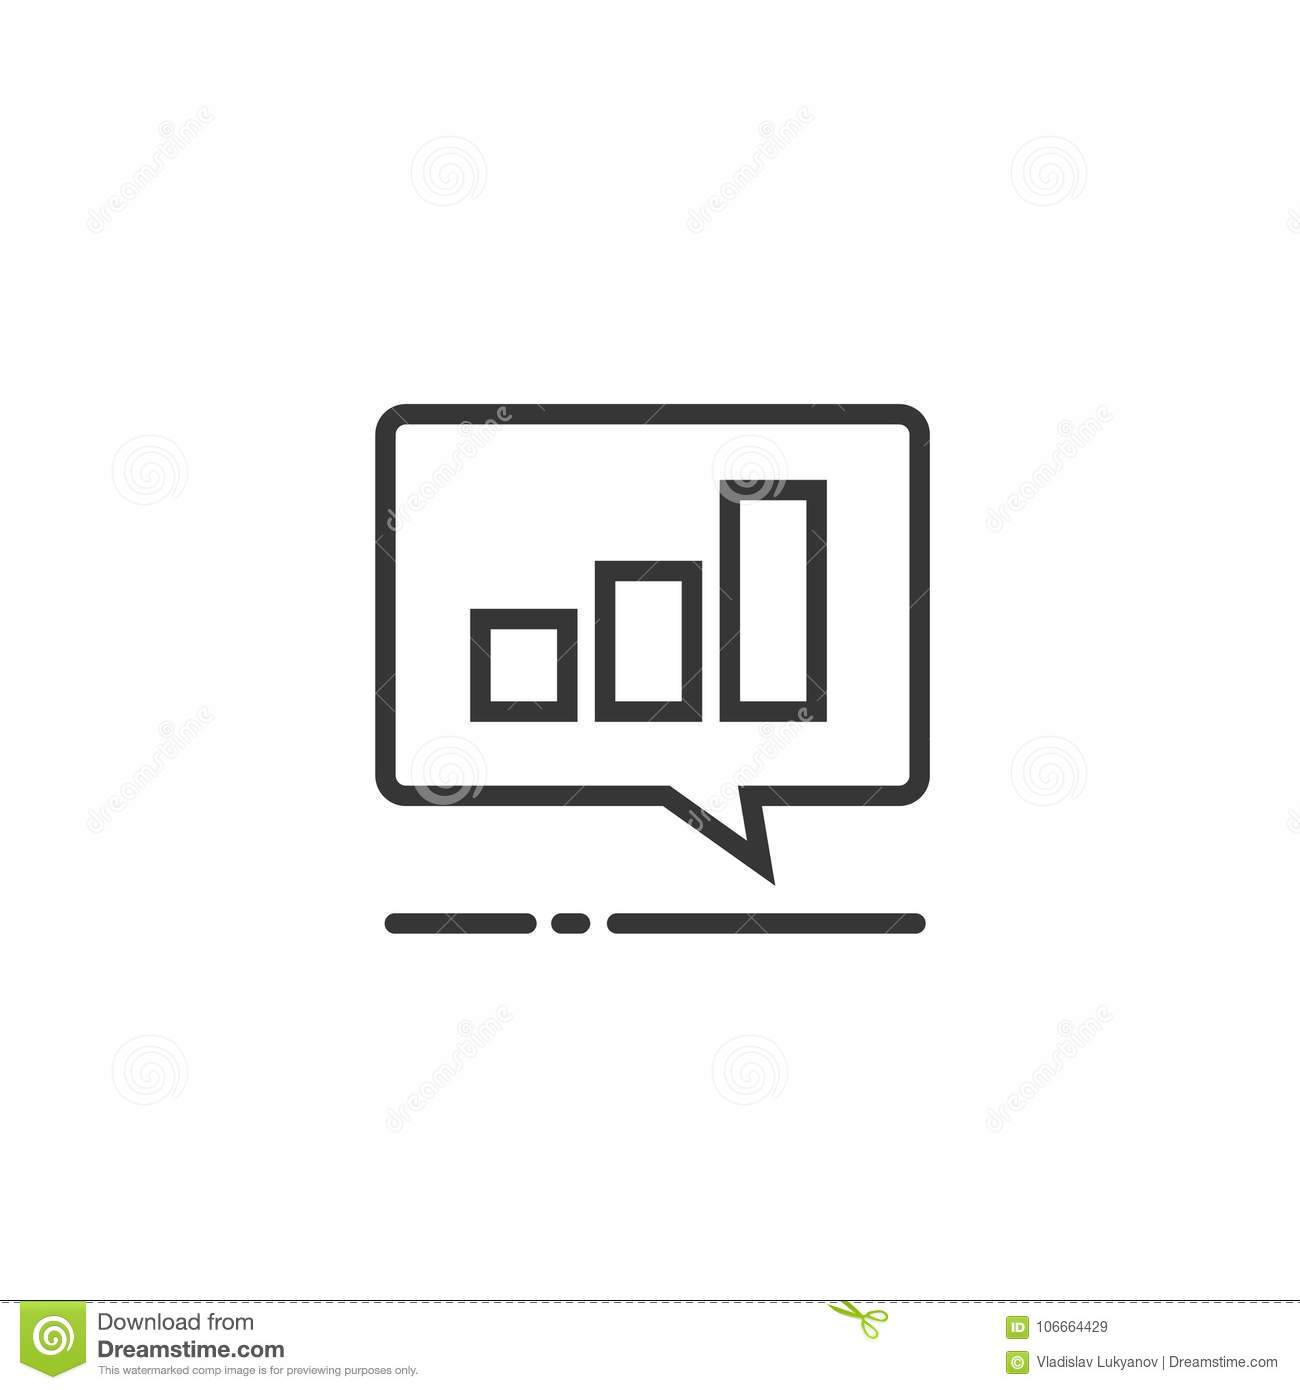 Chart or accounting result data icon vector symbol, line art outline pictogram of analytics or analysis graph in chat